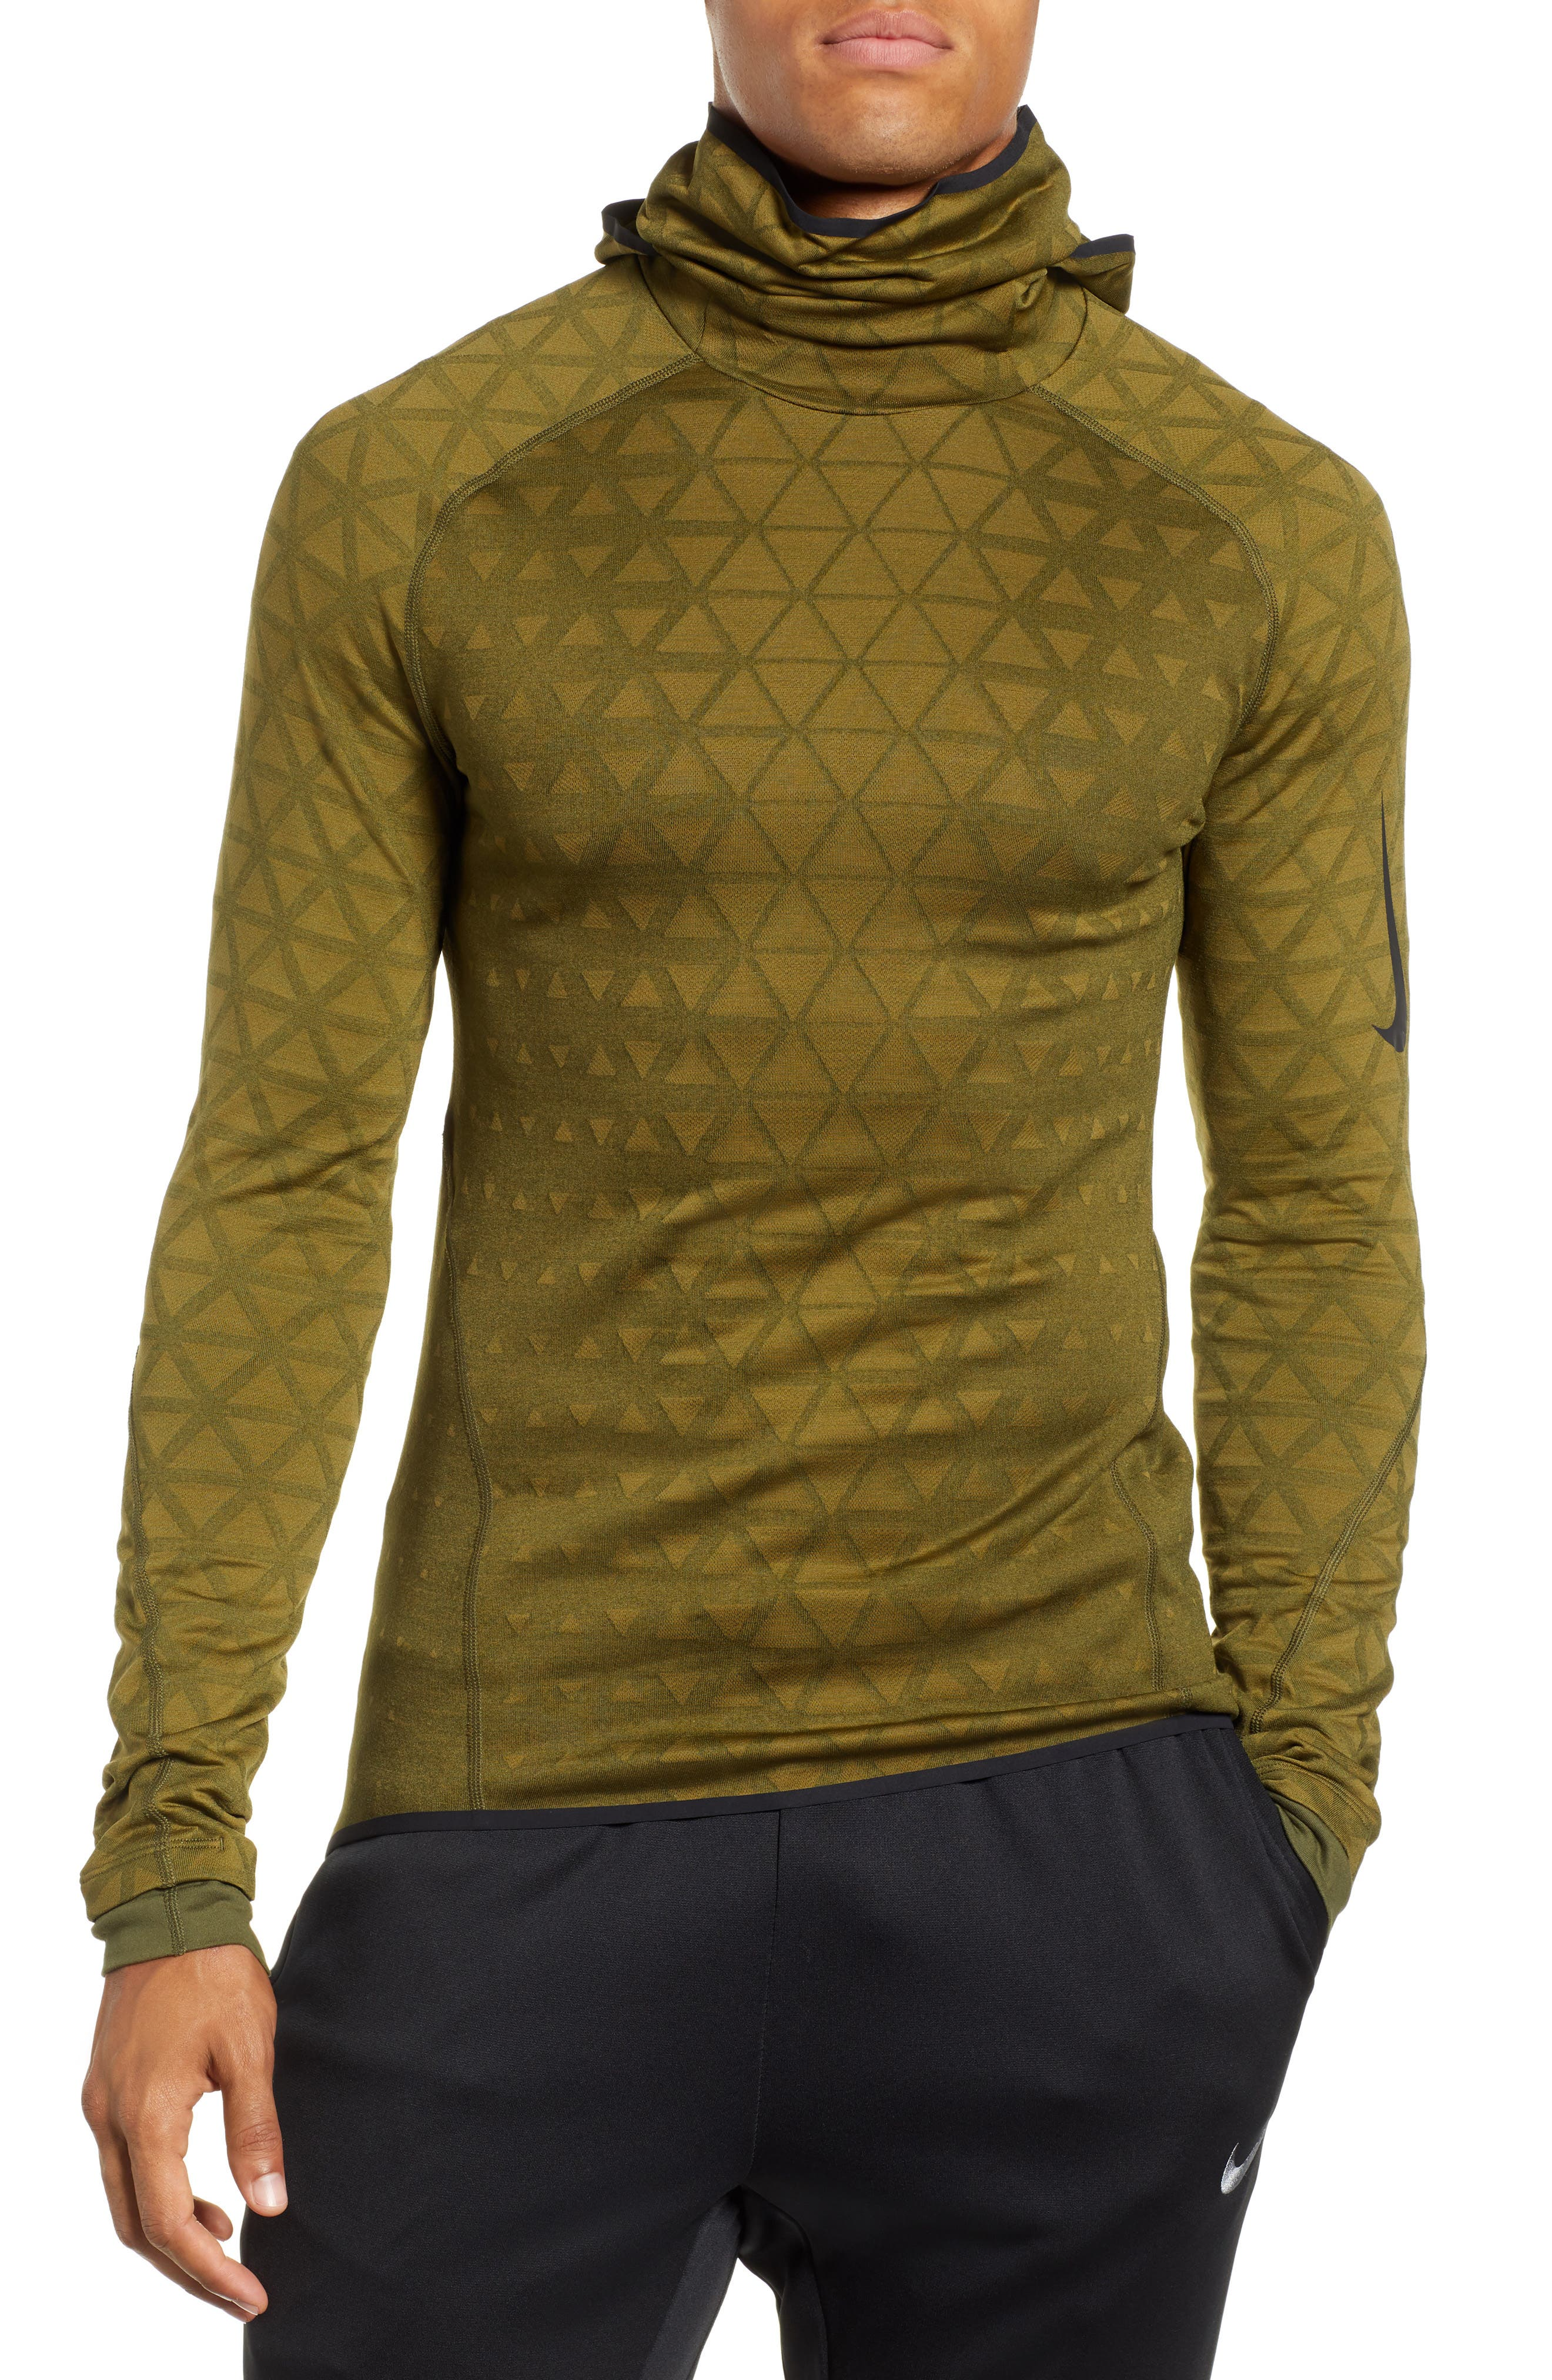 Therma Sphere Hooded Training Top,                             Main thumbnail 1, color,                             OLIVE/ OLIVE FLAK/ BLACK